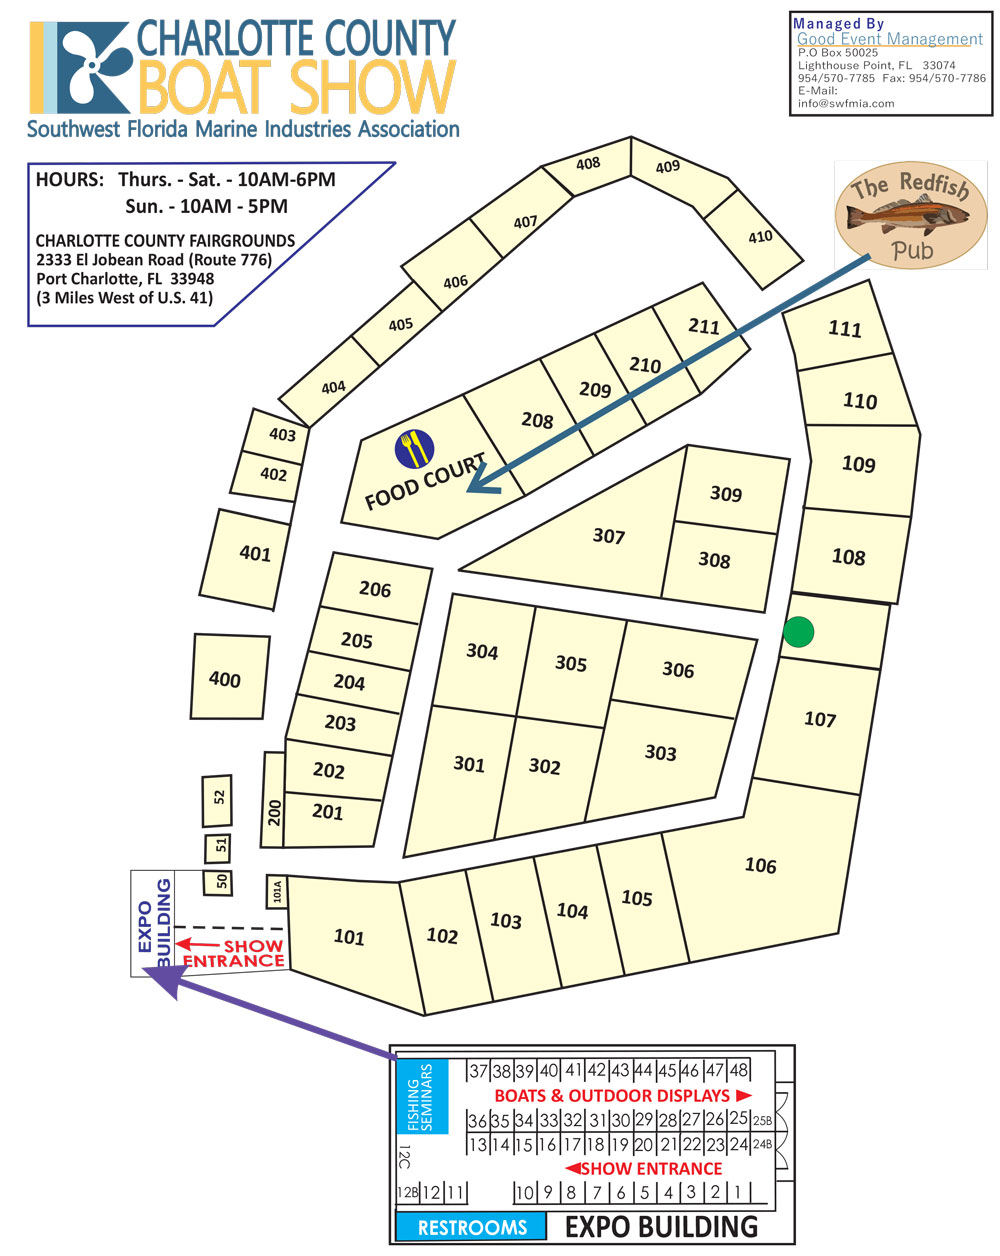 Charlotte County Boat Show Layout